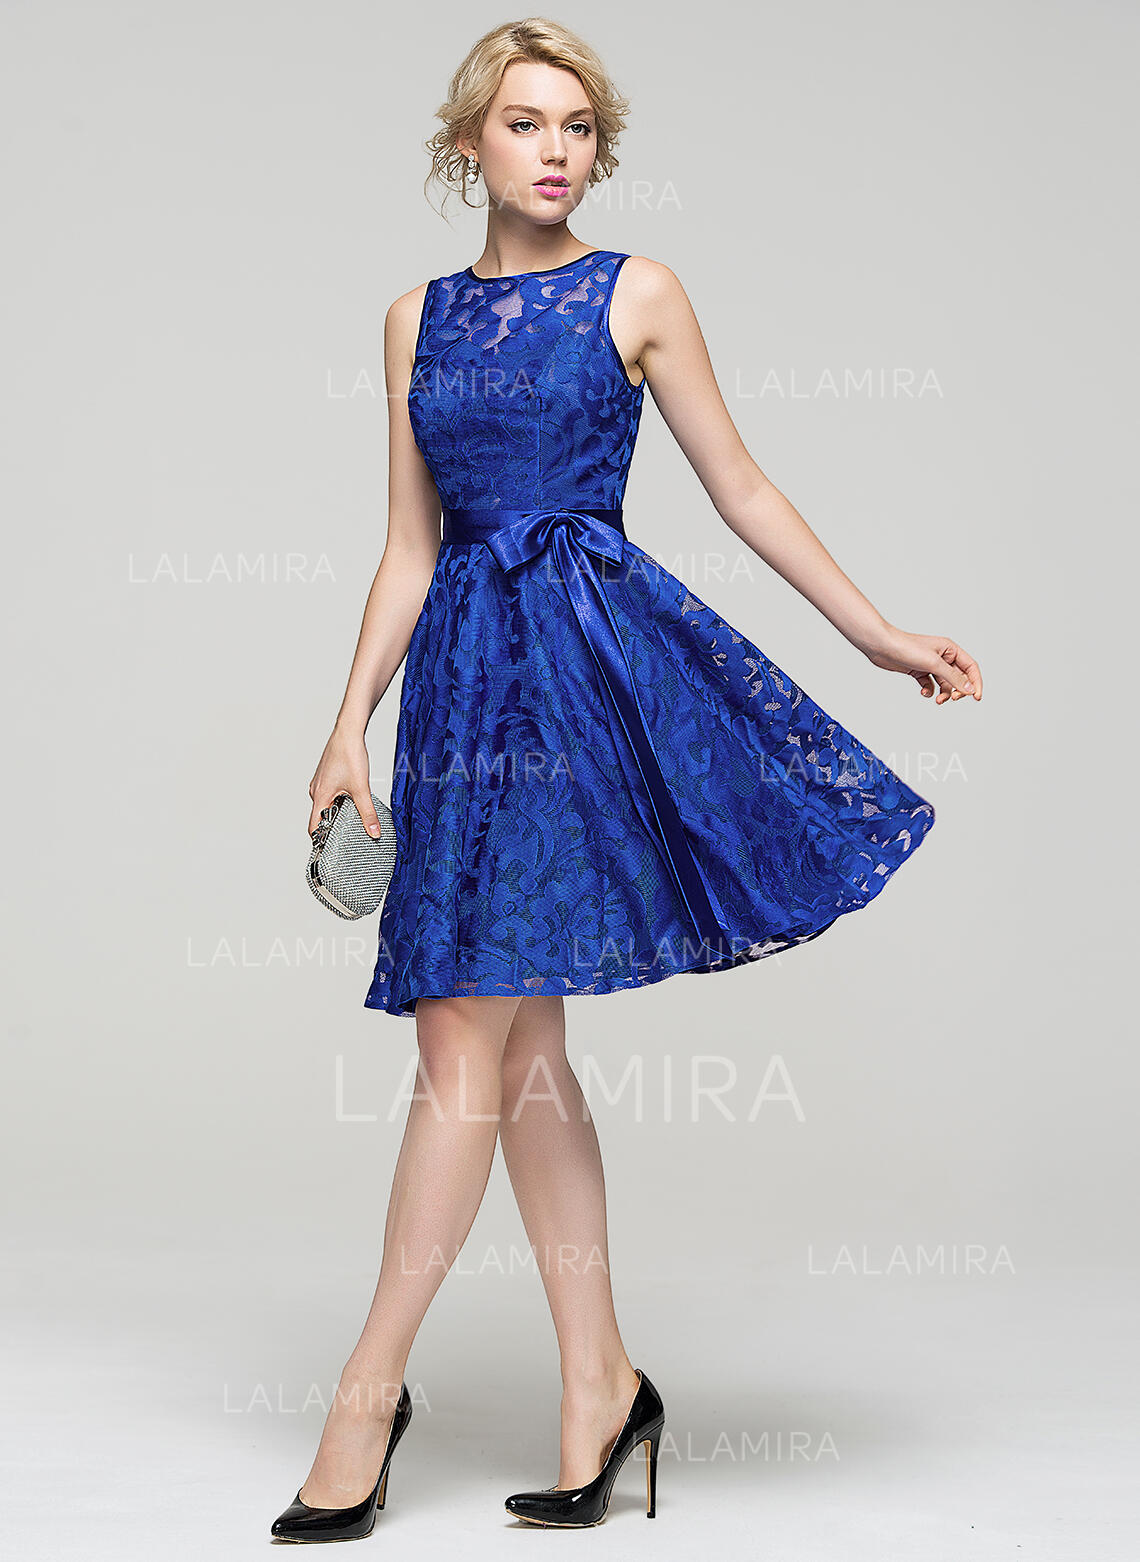 a5a3cb8c8d0 A-Line Princess Knee-Length Homecoming Dresses Scoop Neck Lace Sleeveless  (022214085. Loading zoom